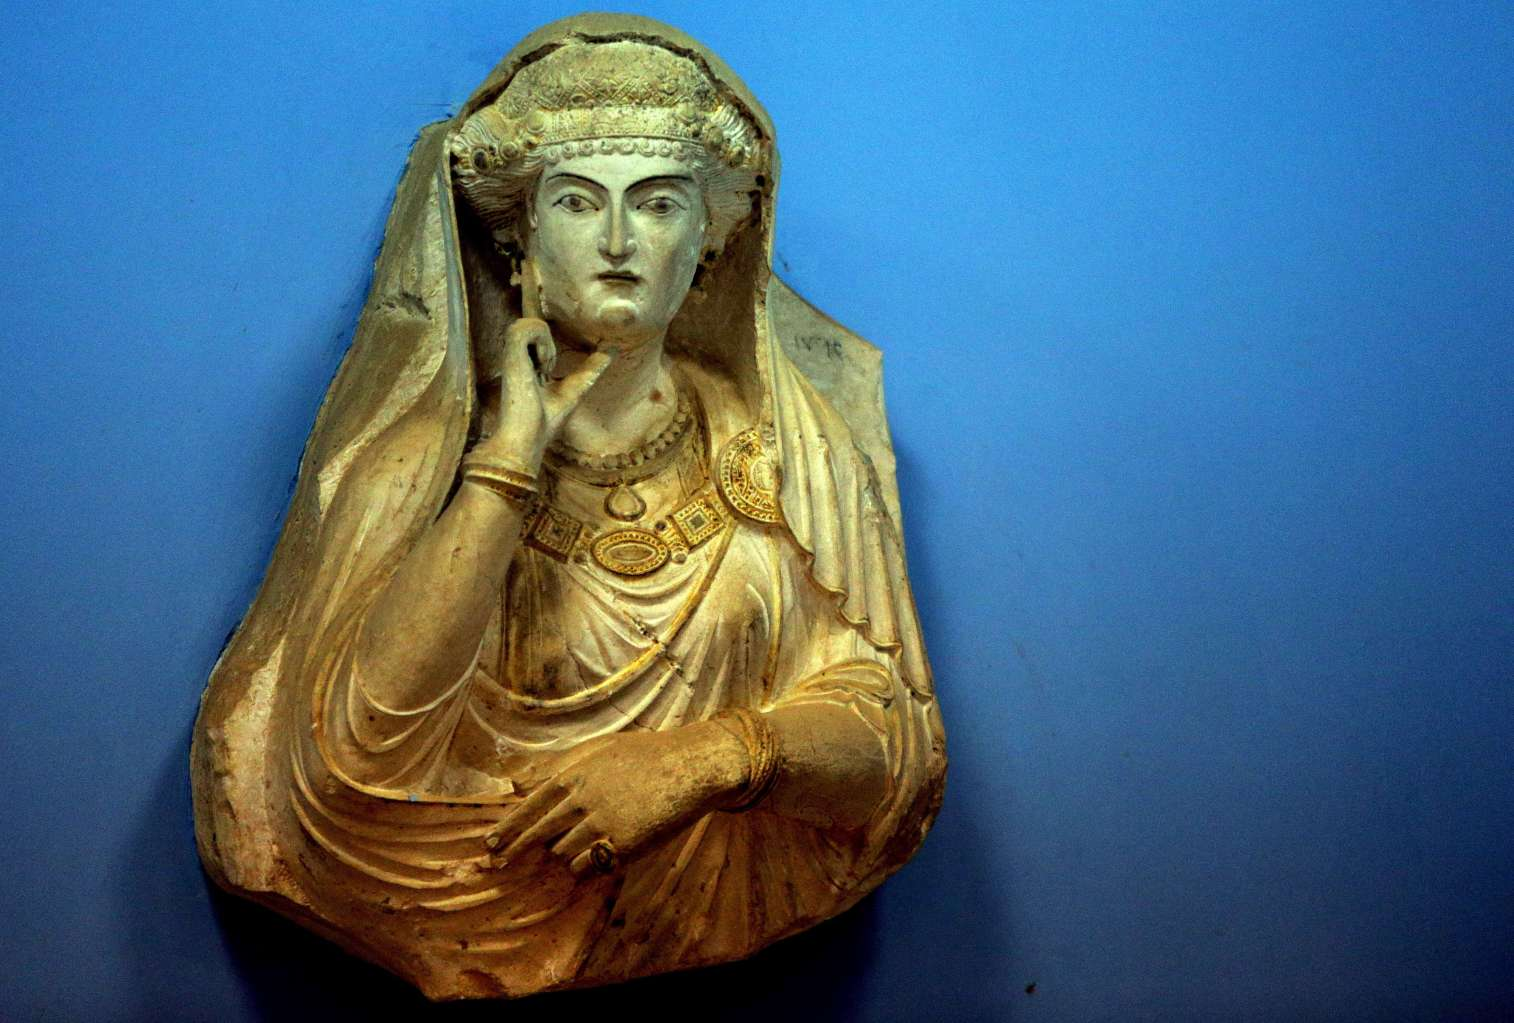 A picture taken on March 14, 2014 shows a sculpture found in the ancient Syrian oasis city of Palmyra, 215 kilometres northeast of Damascus, and now displayed at the city's museum. From the 1st to the 2nd century, the art and architecture of Palmyra, standing at the crossroads of several civilizations, married Graeco-Roman techniques with local traditions and Persian influences. AFP PHOTO/JOSEPH EID        (Photo credit should read JOSEPH EID/AFP/Getty Images)